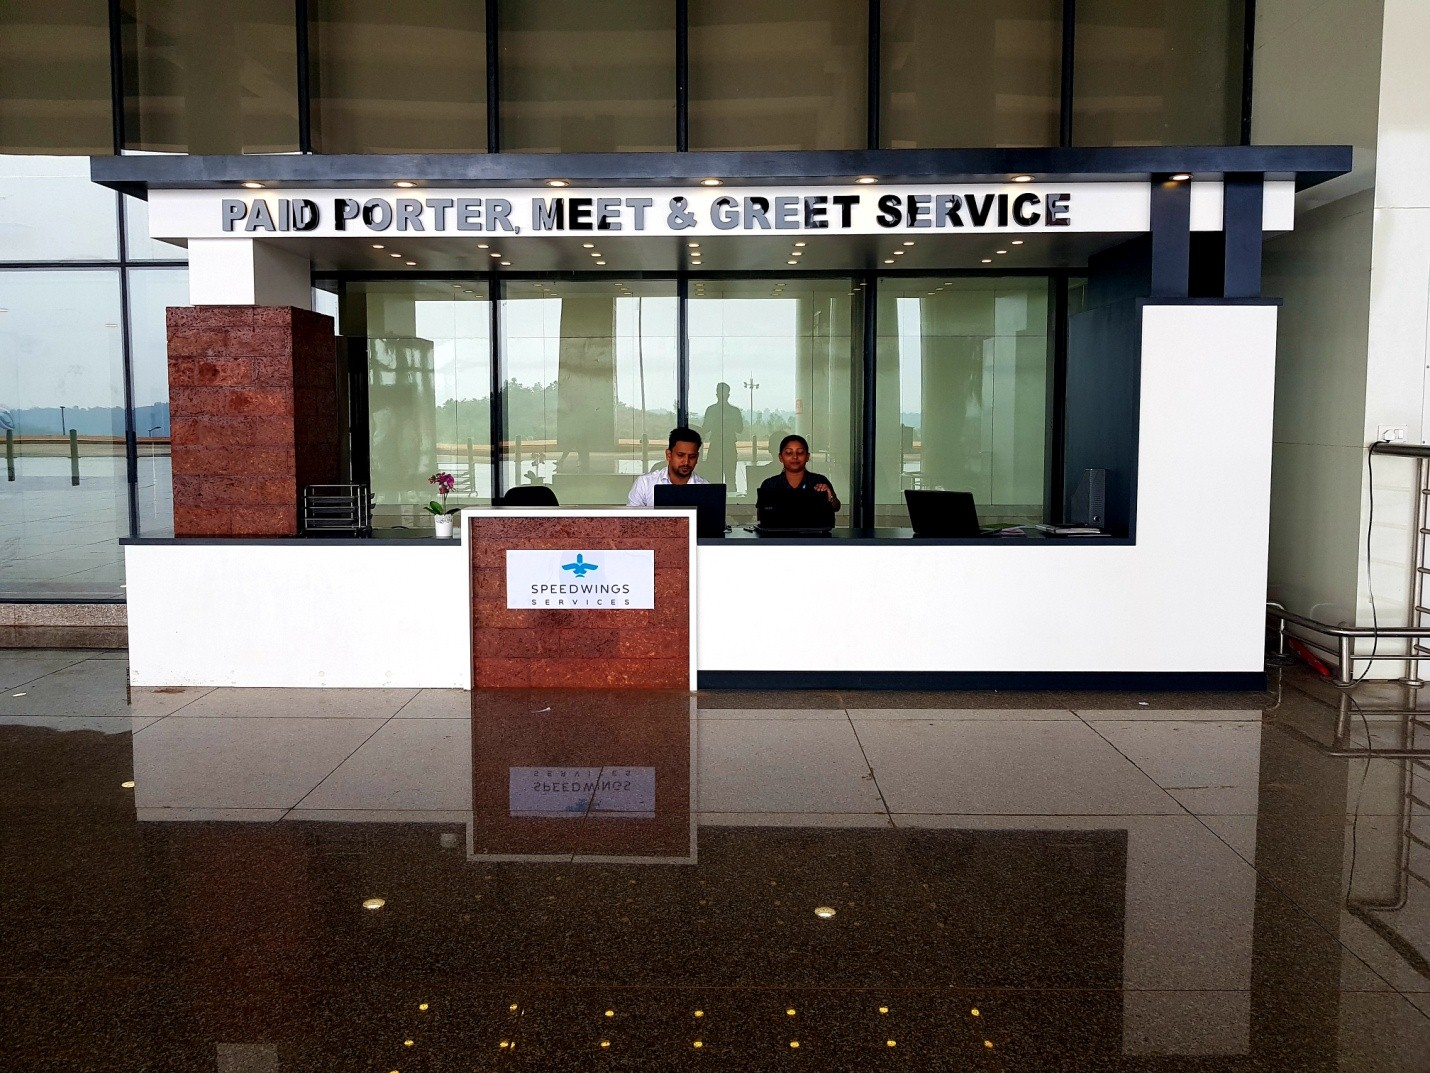 Paid Porter Meet and Greet Services Arrival